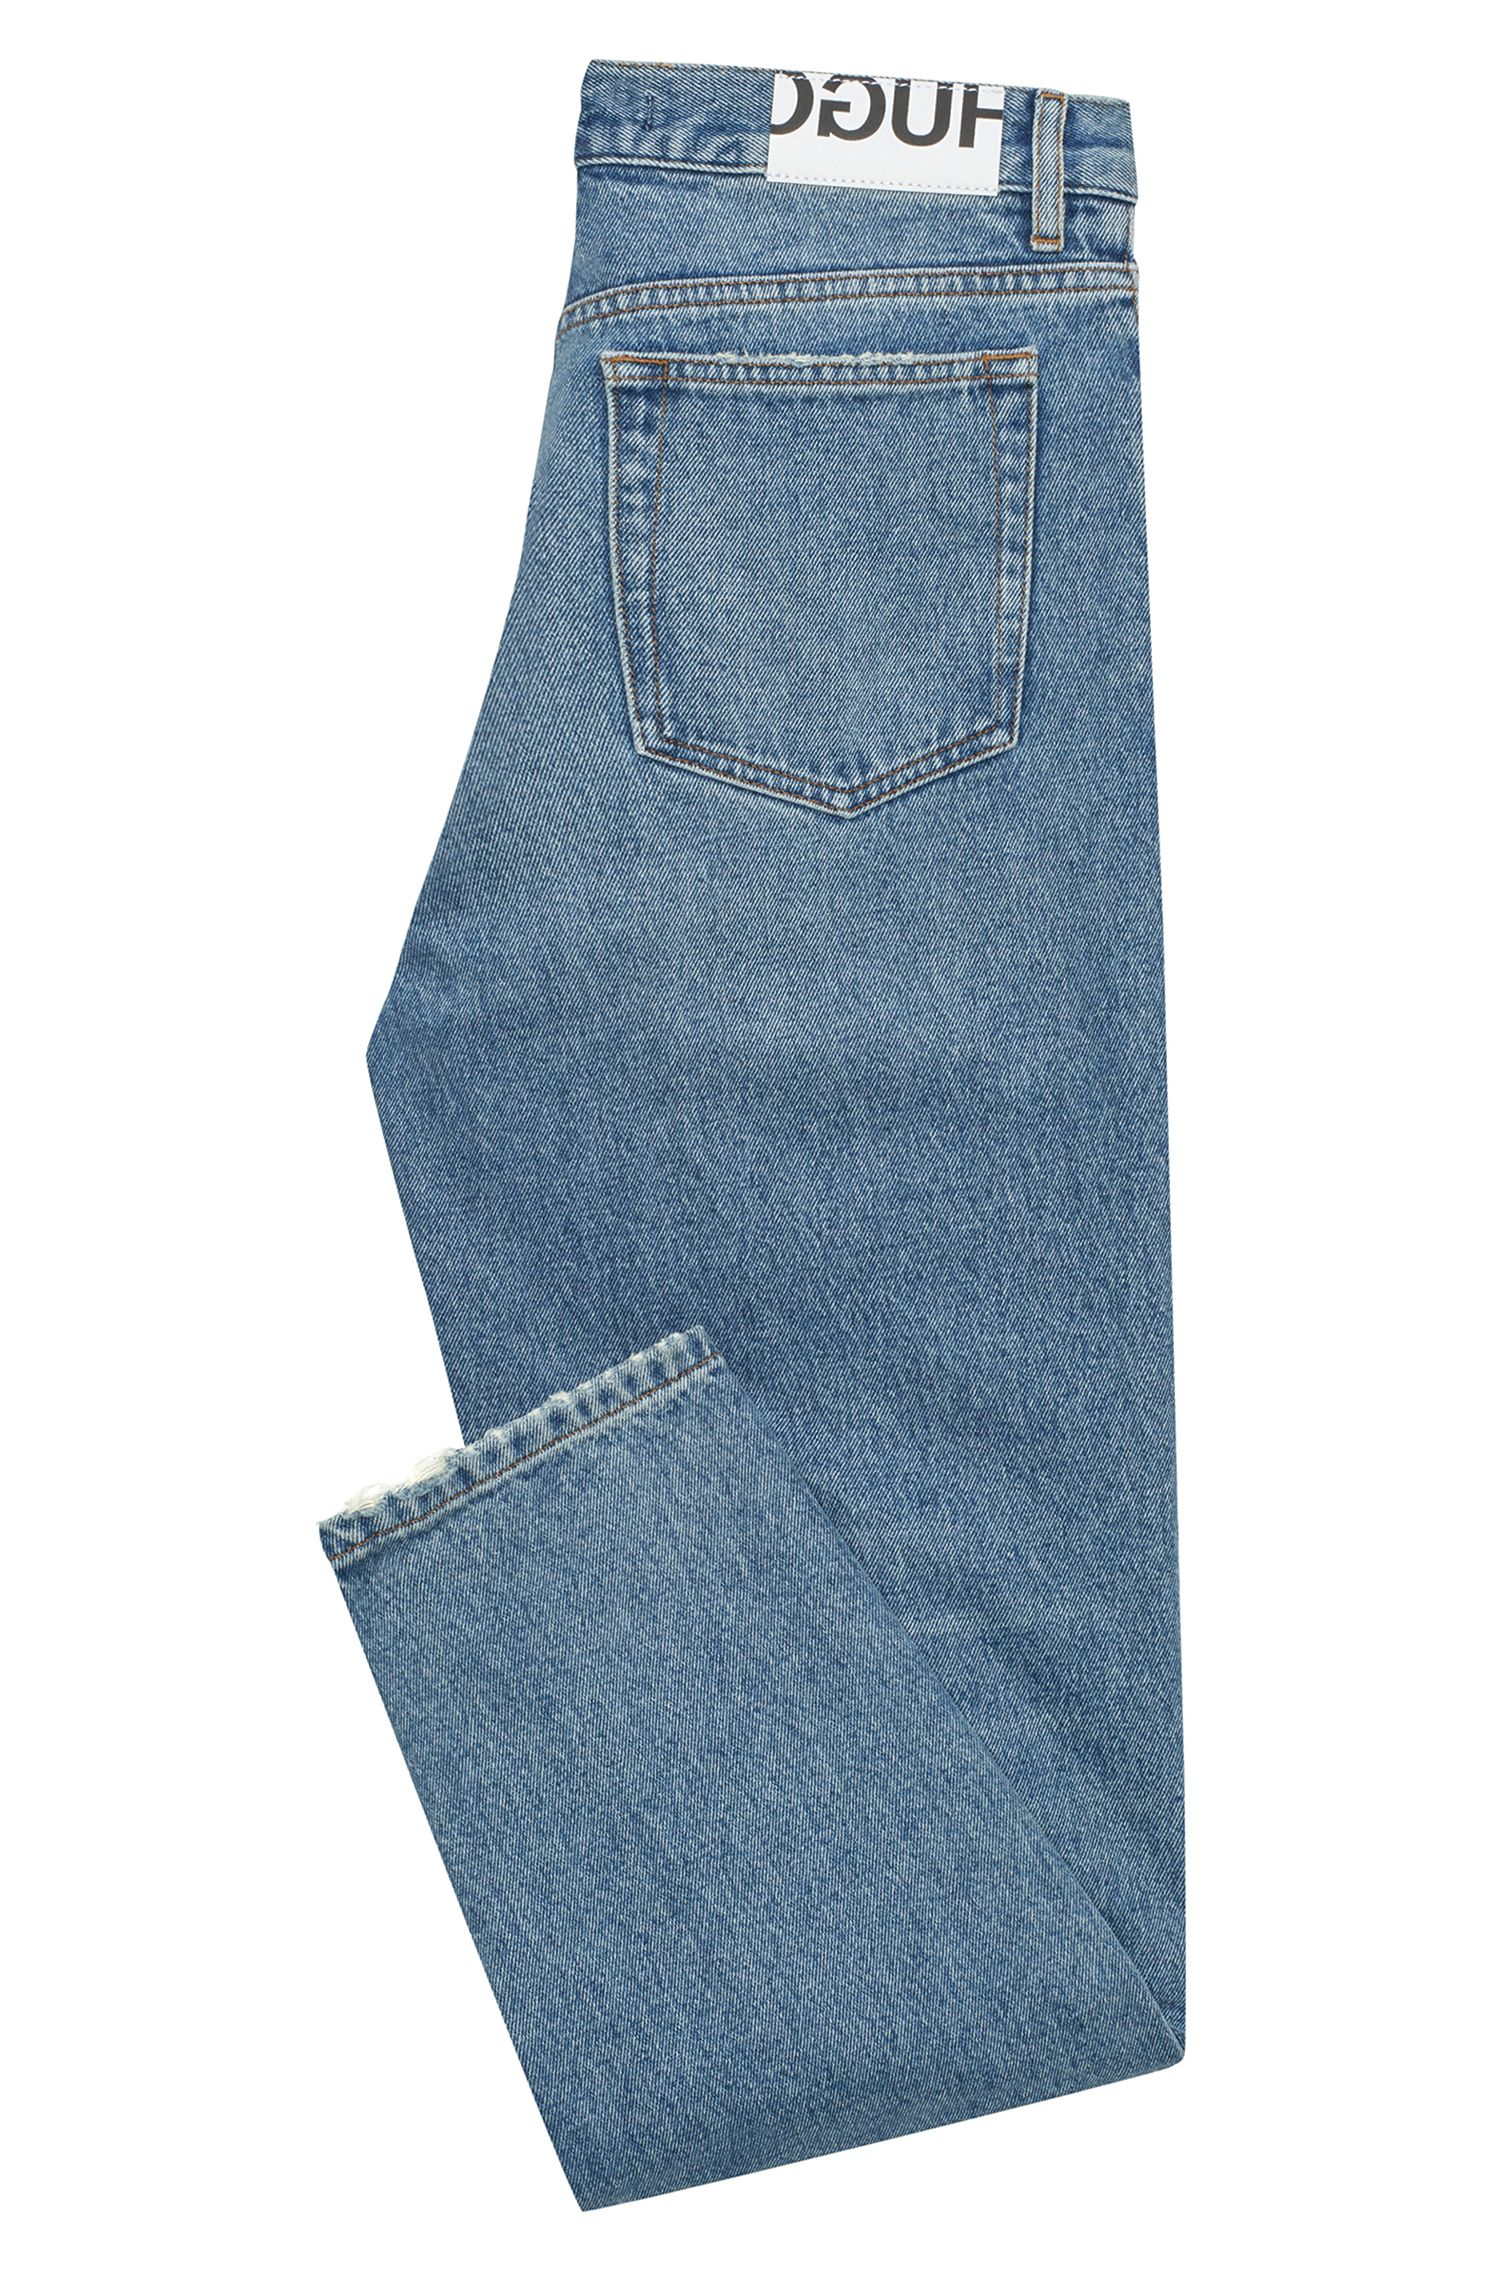 Mid-blue denim jeans in a slim fit